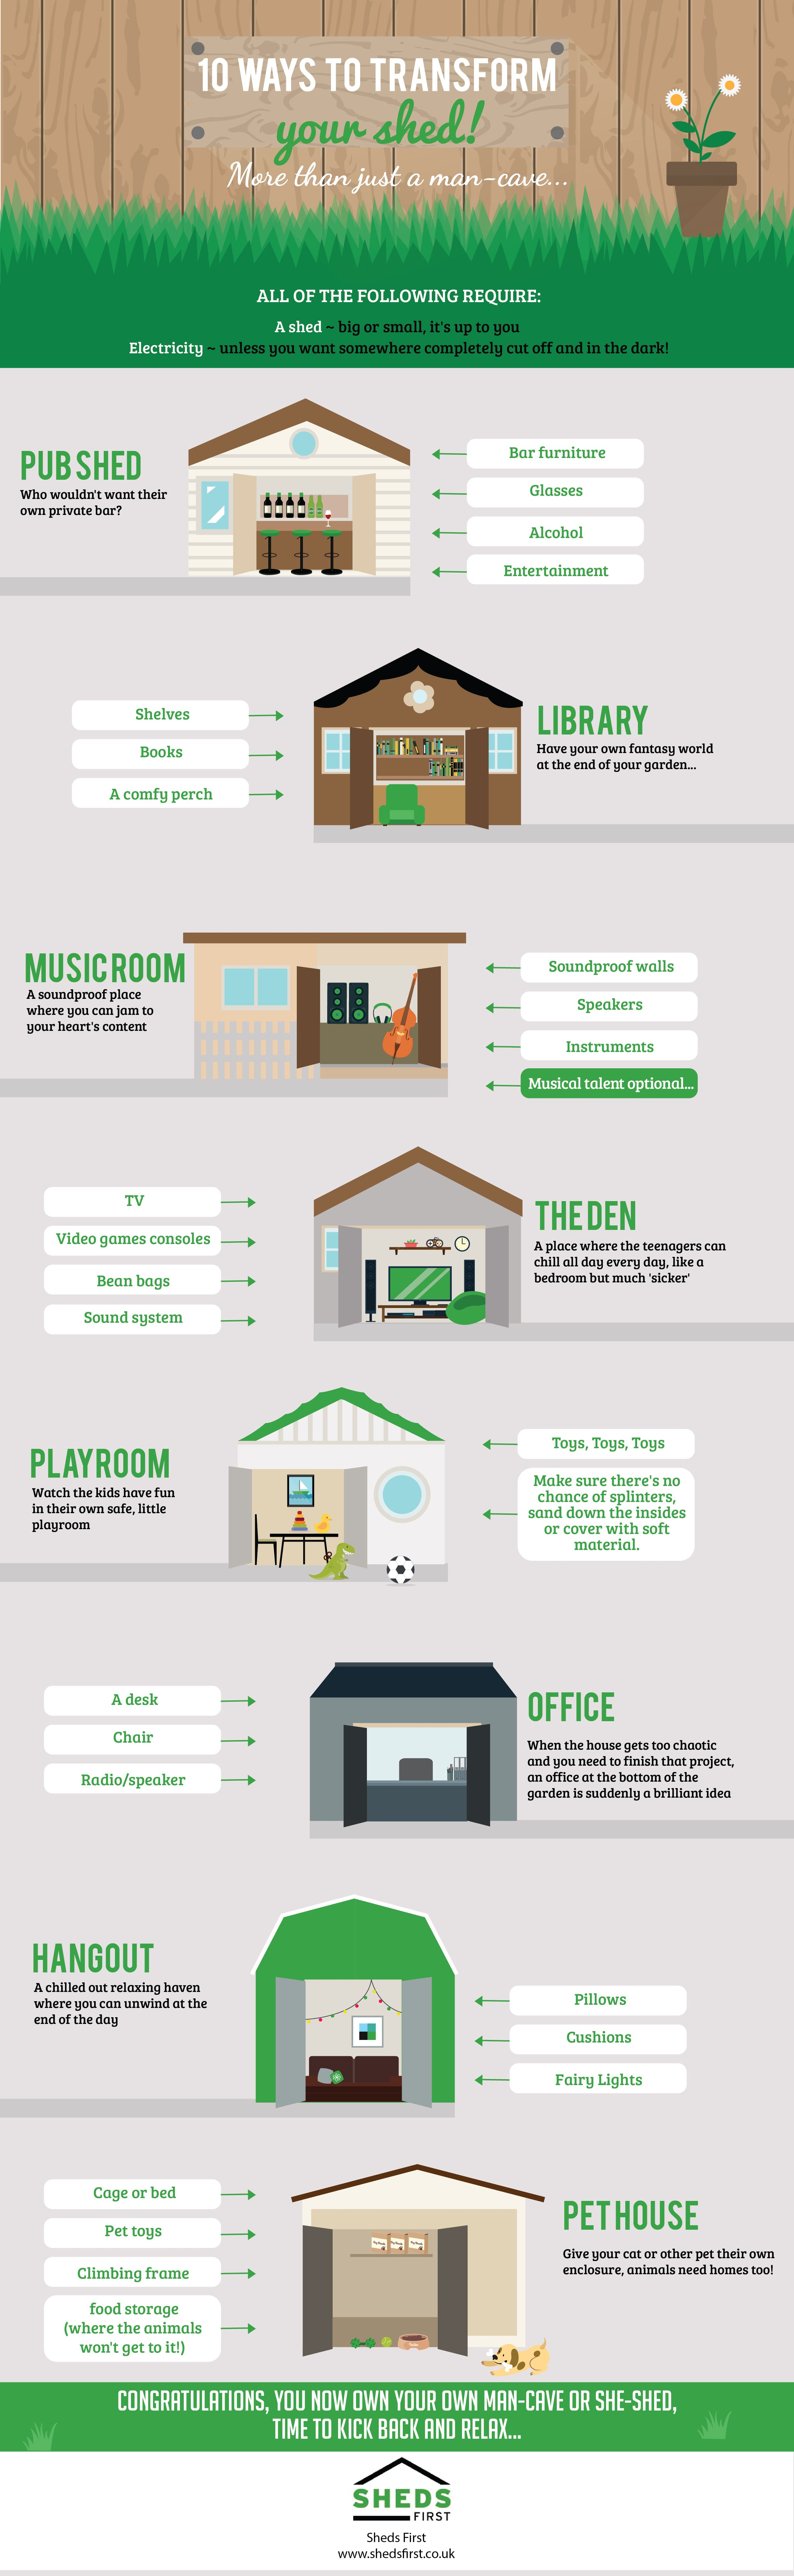 10 Ways to Transform Your Shed infographic